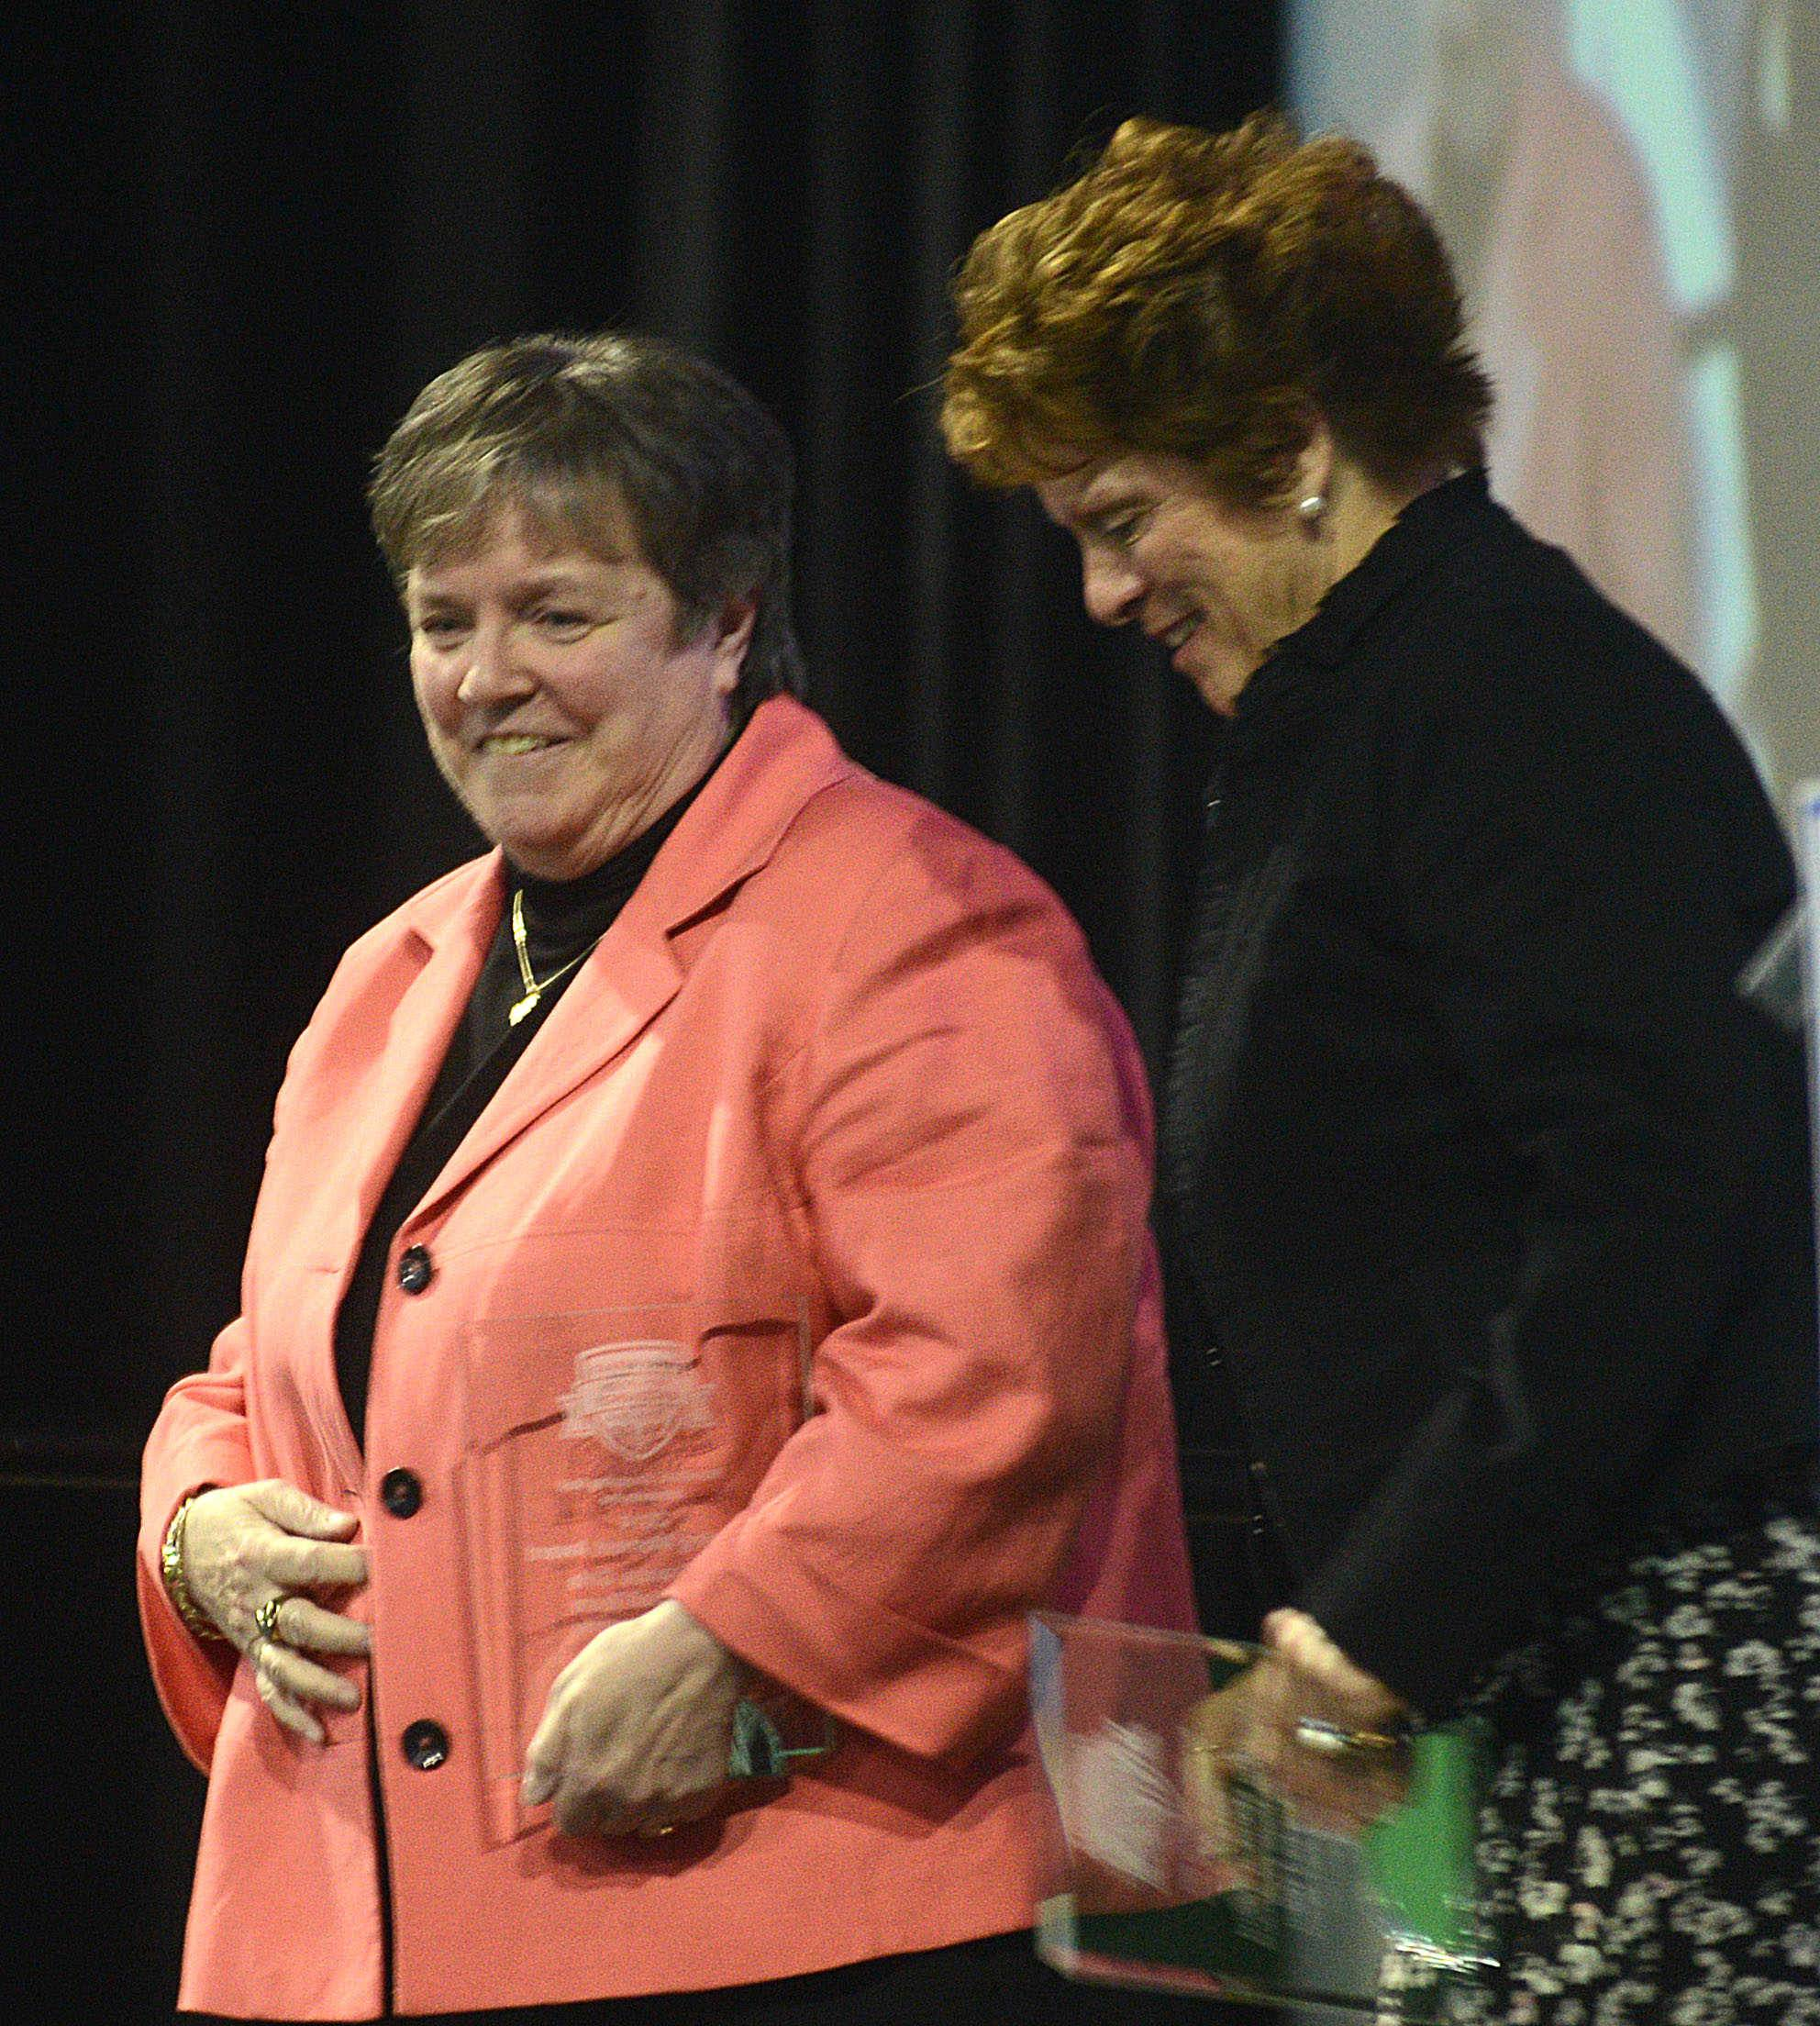 Girls volleyball coaches Jean Field, left, of IC Catholic Prep and Peg Kopec of St. Francis receive their Dazzling moment Awards during the Daily Herald Prep Sports Excellence event at the Sears Centre in Hoffman Estates on Sunday afternoon. Both coaches led their teams to state titles last autumn.